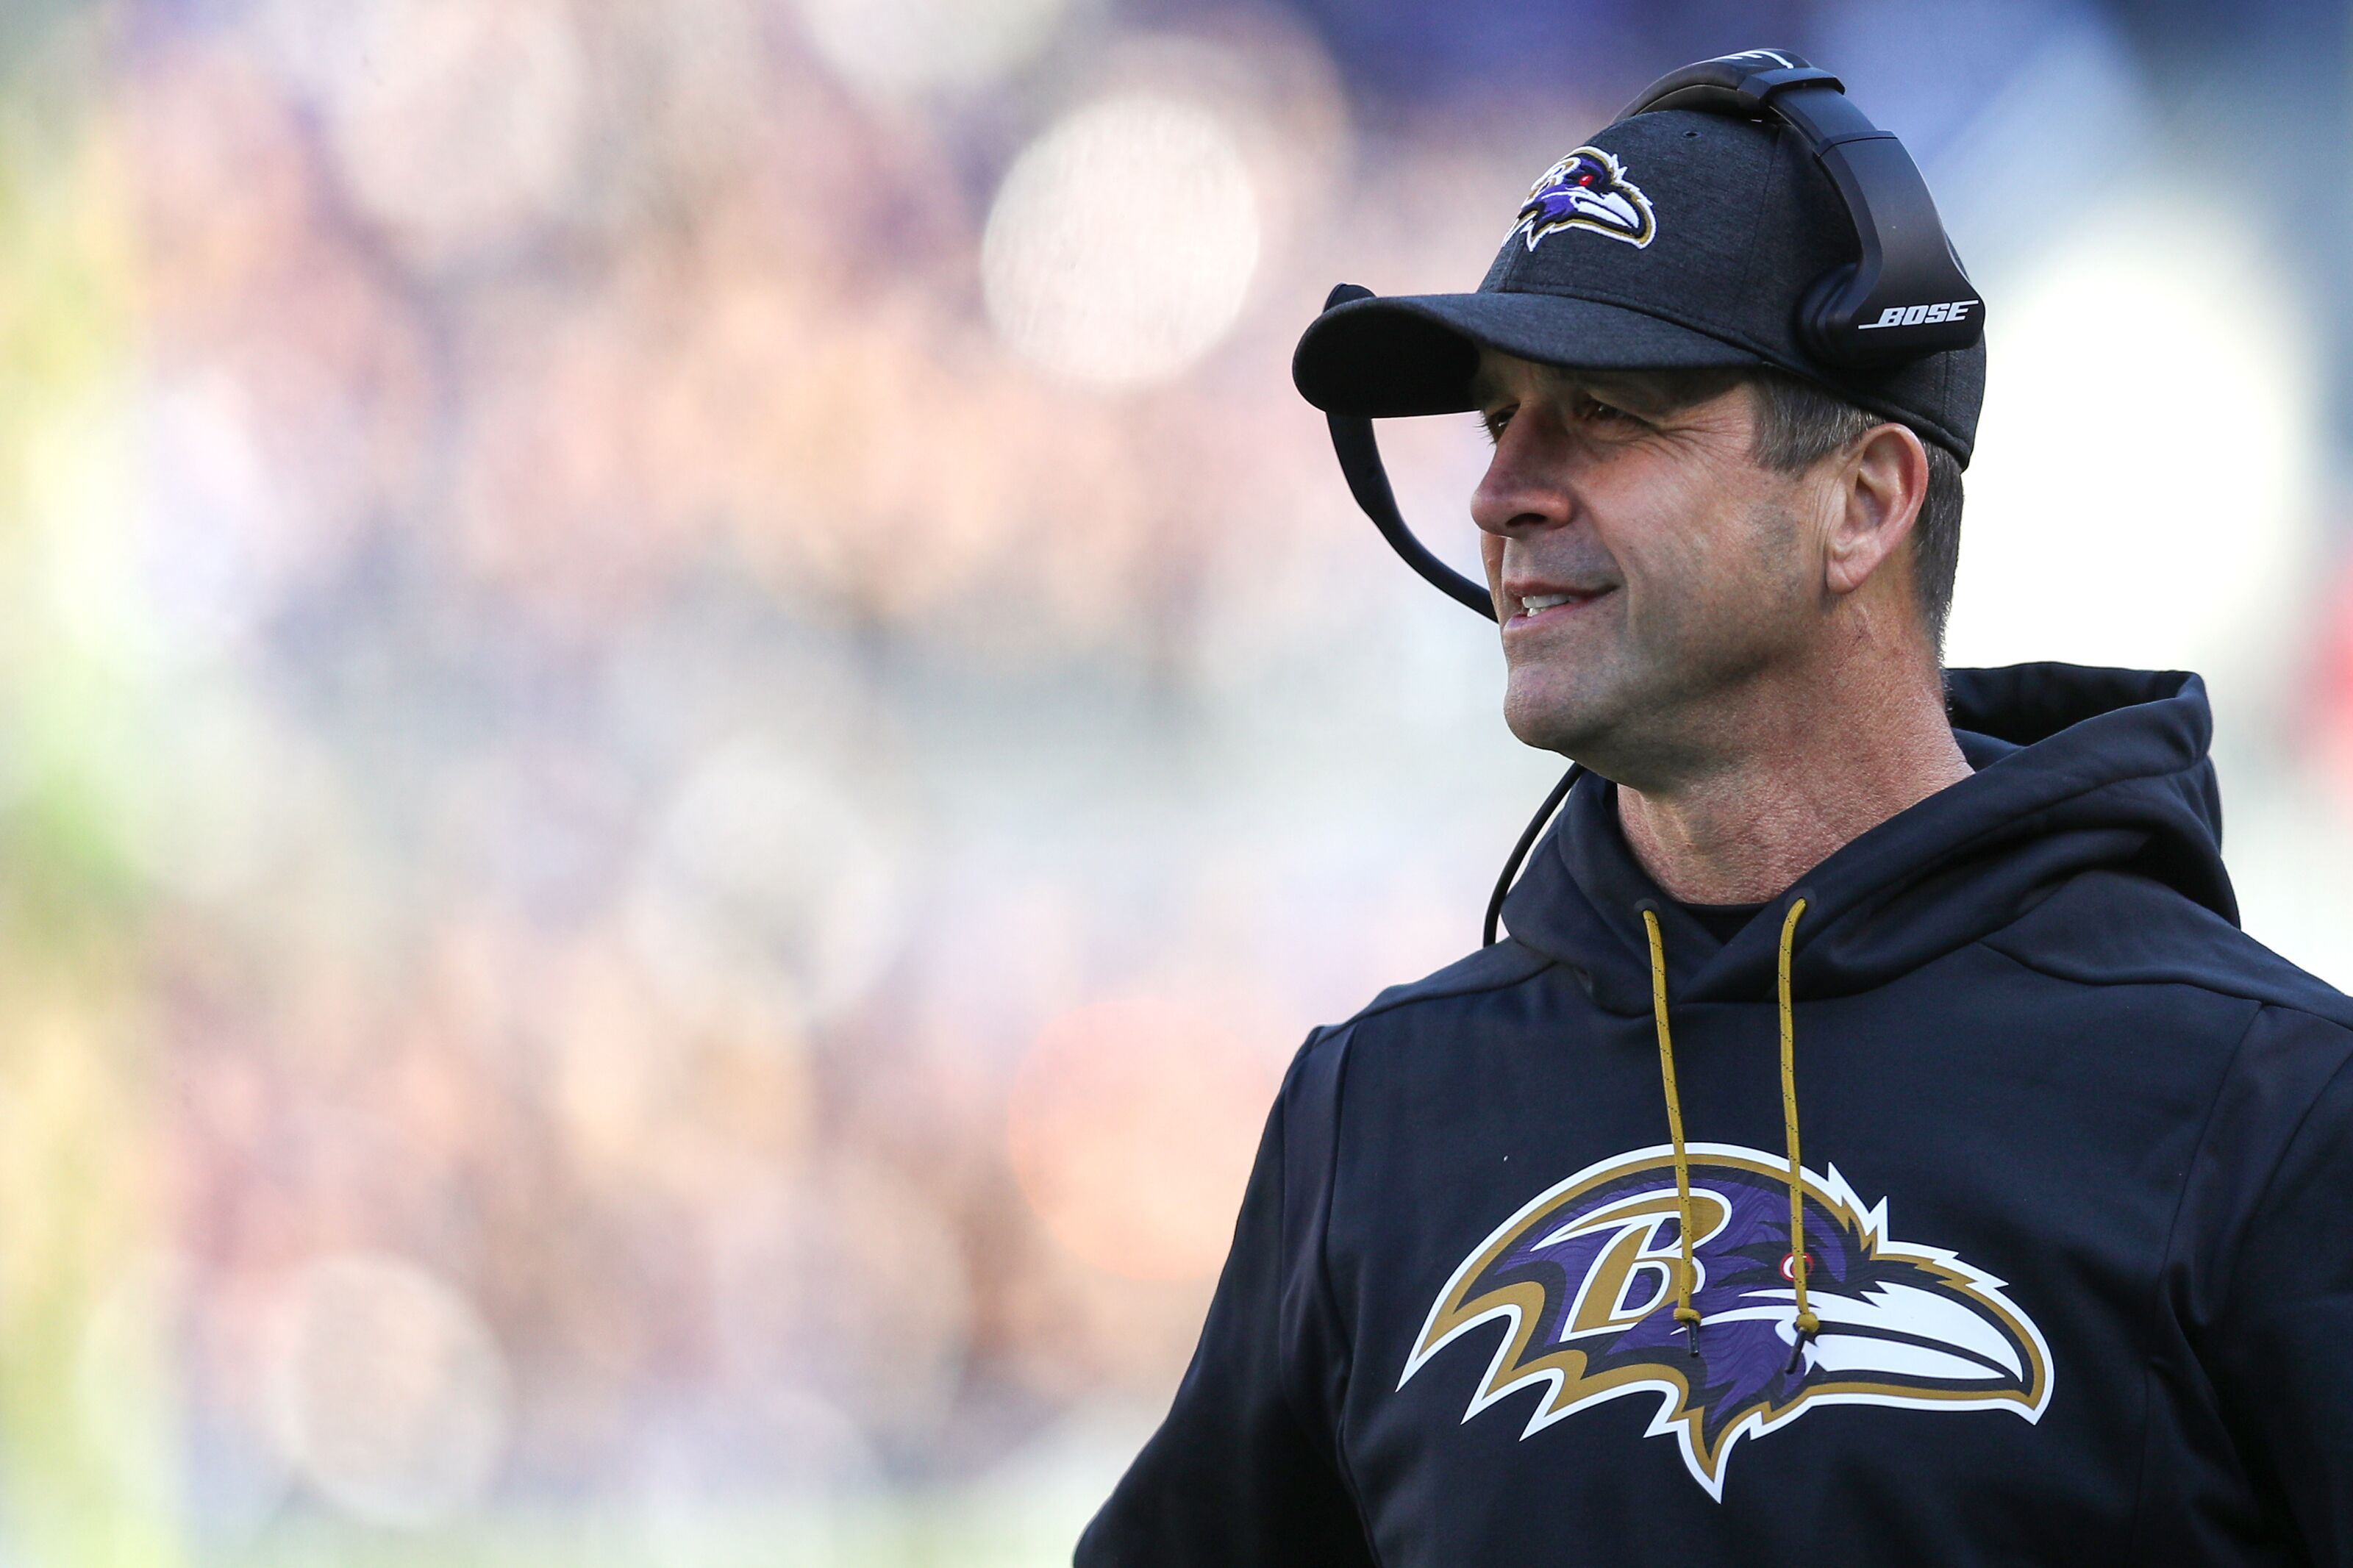 Ravens debates: Is John Harbaugh overrated or underrated?